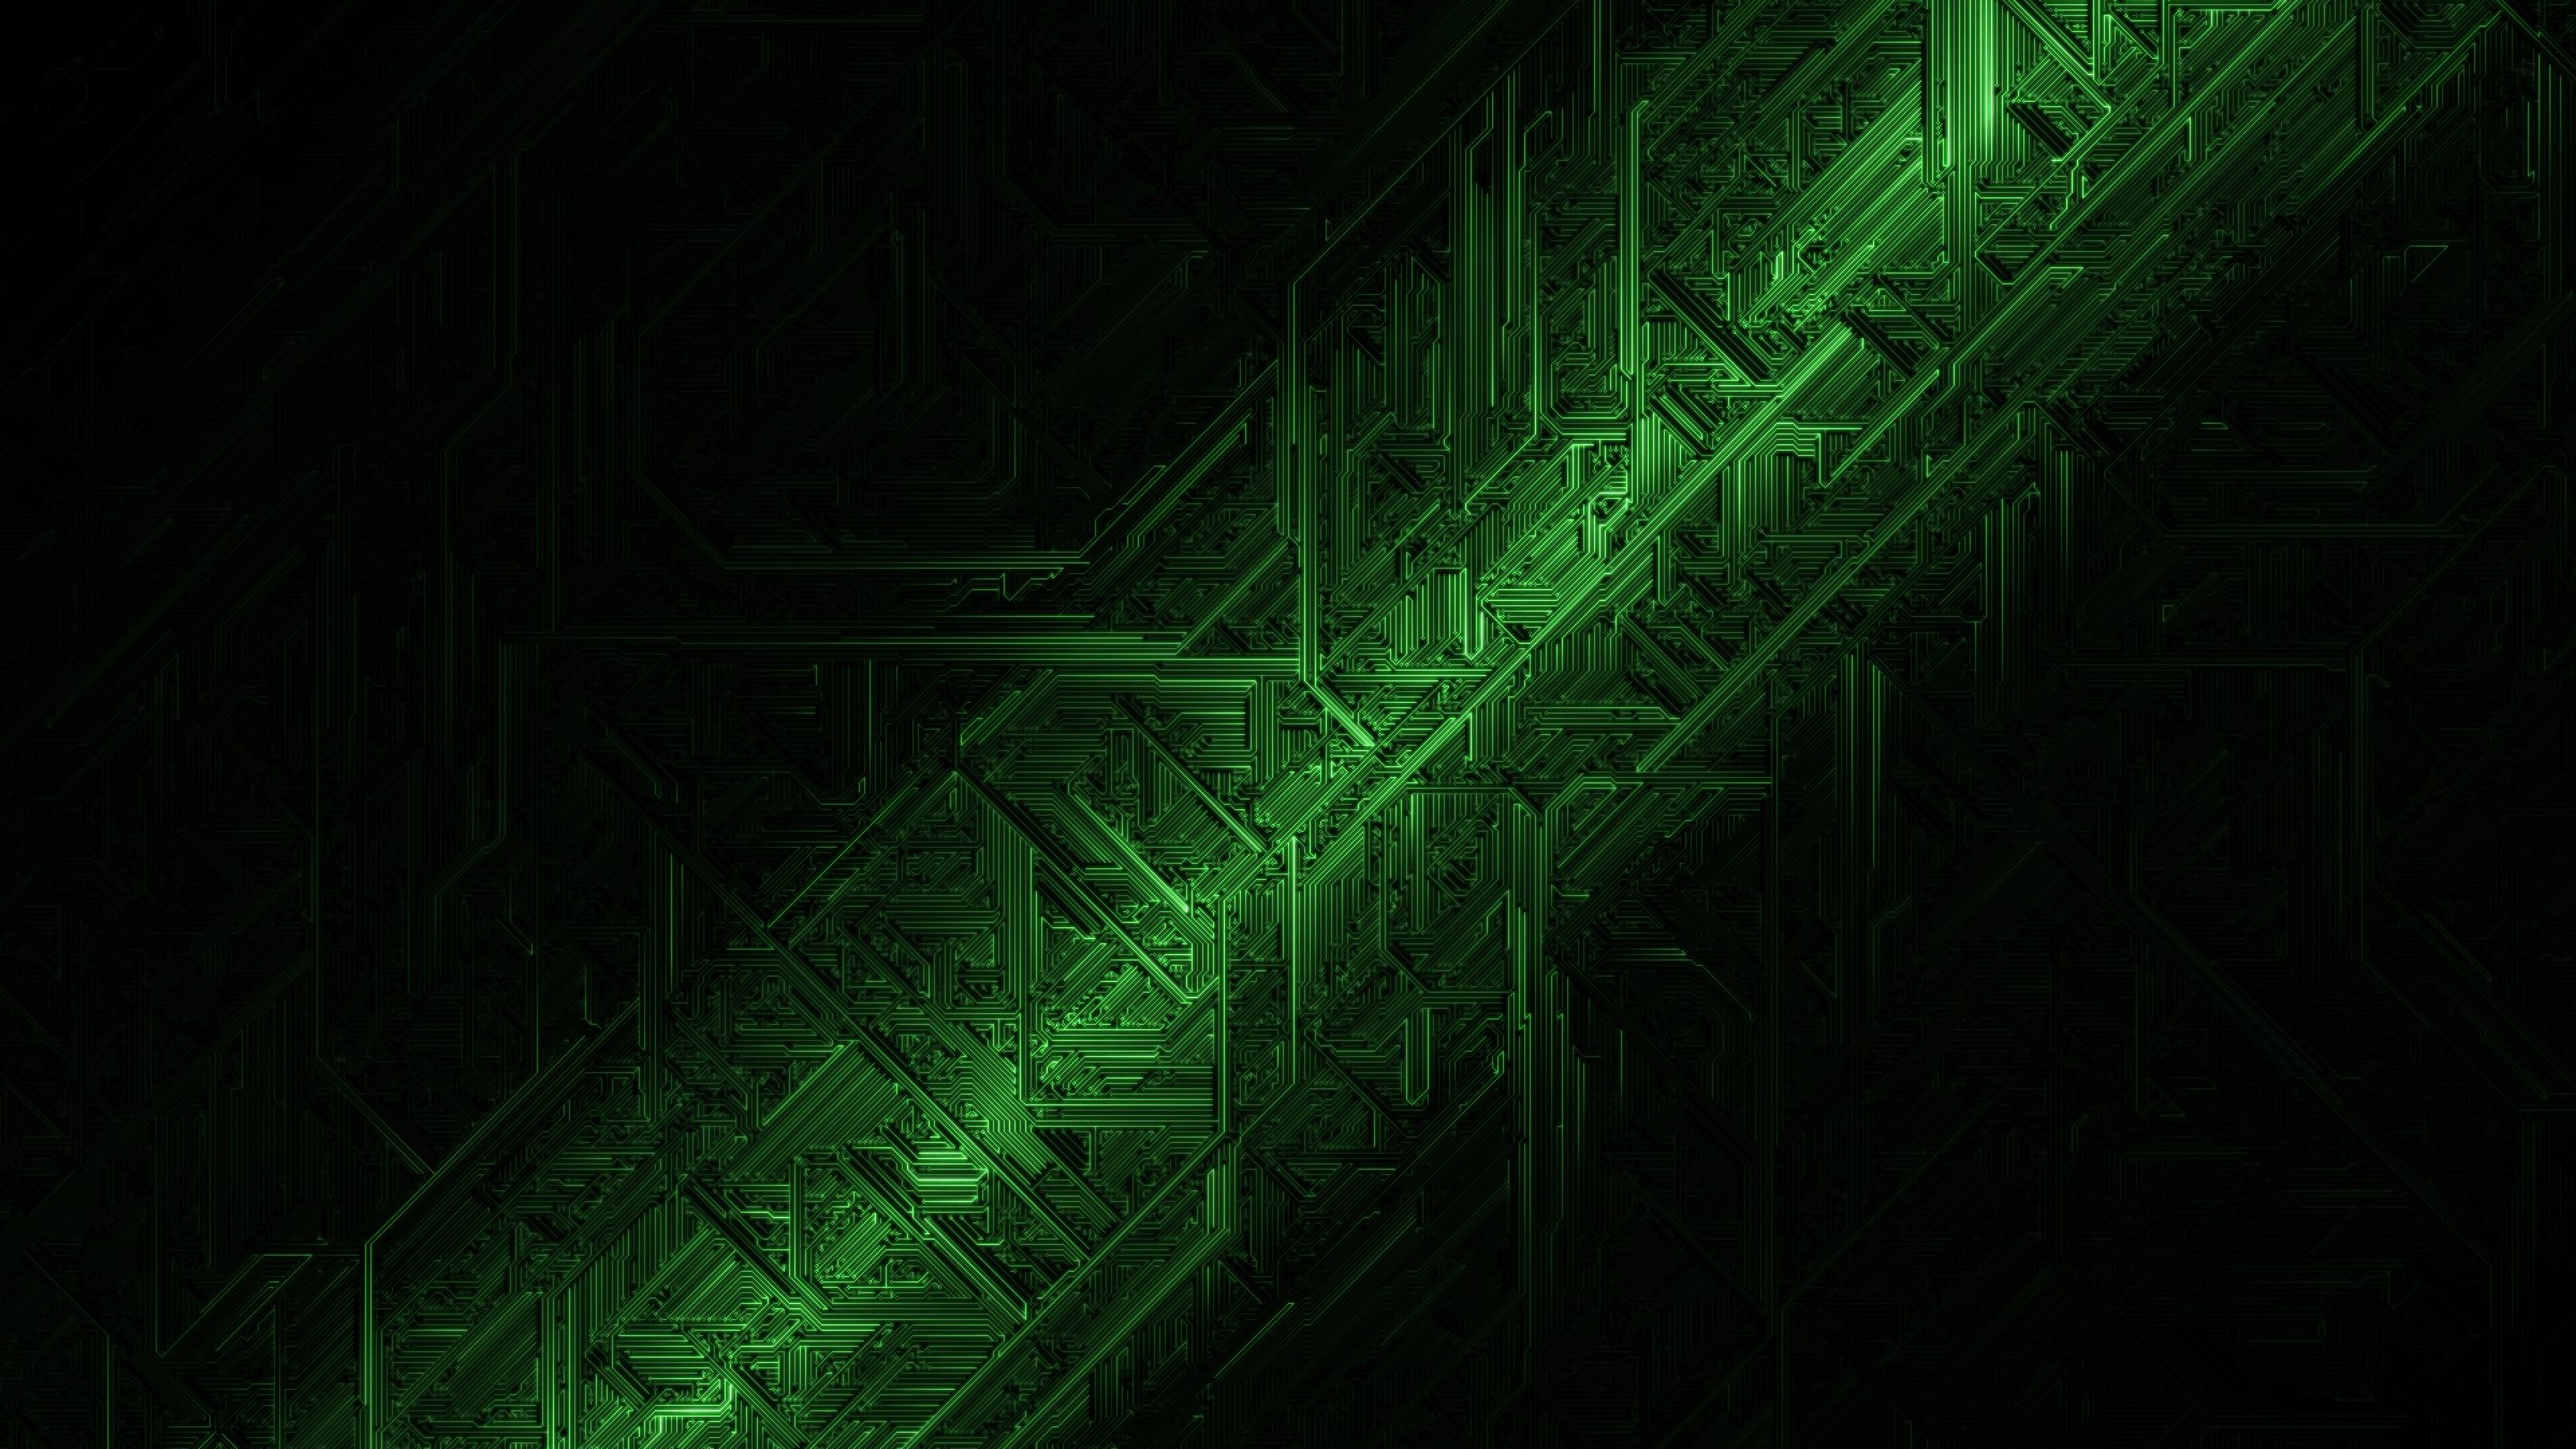 Electronics machine technology circuit electronic computer - Green abstract background hd ...